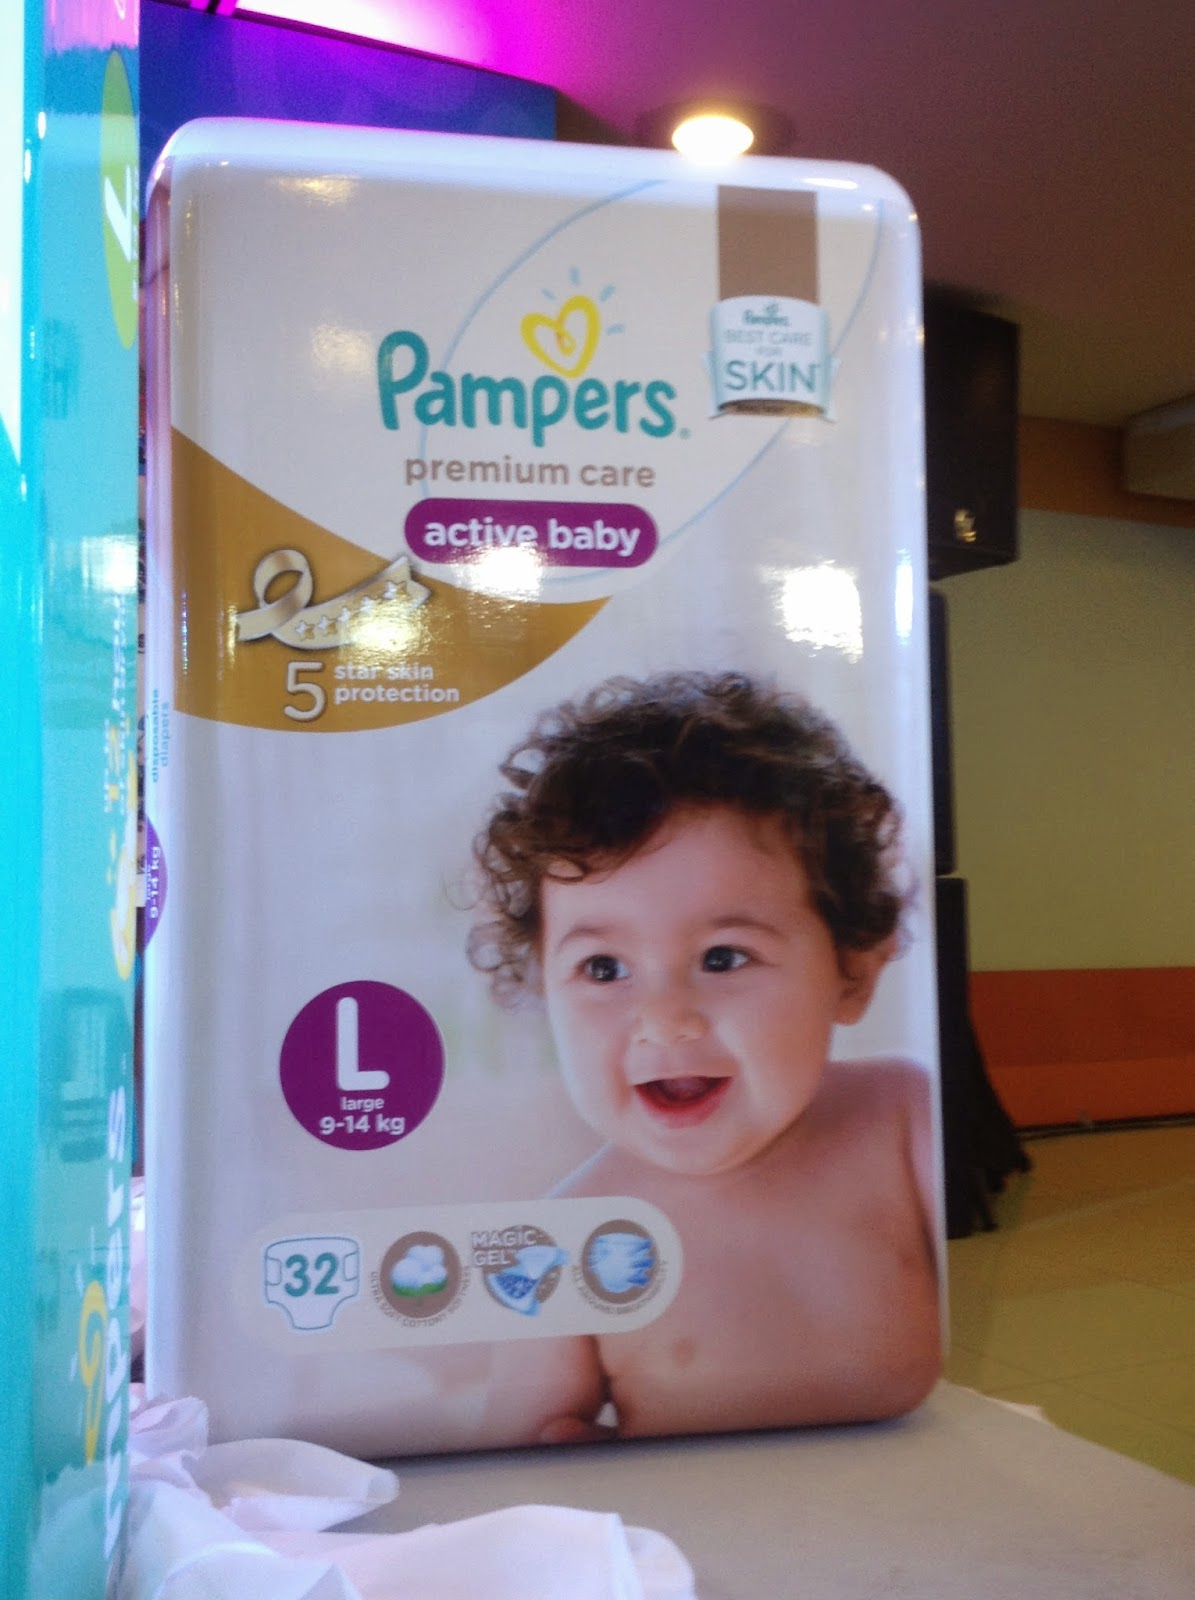 Babys First Celebrate Precious Moments With New Pampers Baby Dry Premium Care Born 52 Tape Just Like Every Day Is Different Firsts Unique Too Invites Moms To And Share Special Of